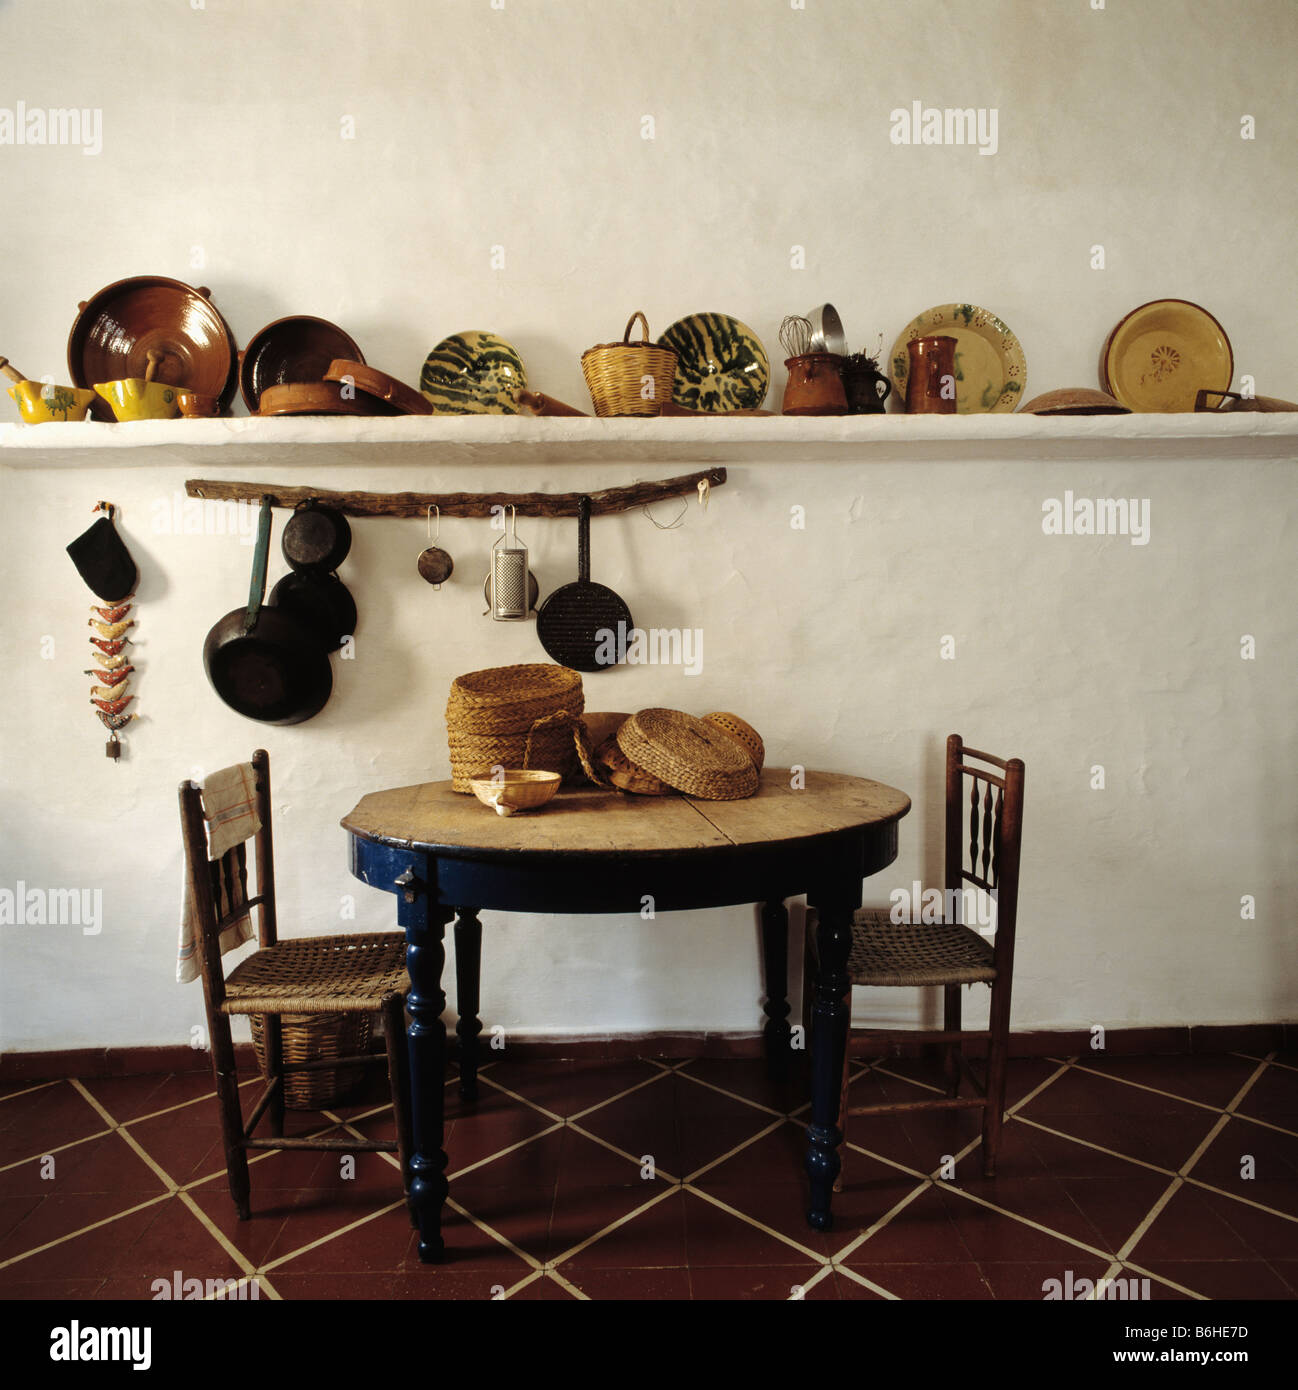 circular table and old wooden chairs in kitchen dining room with